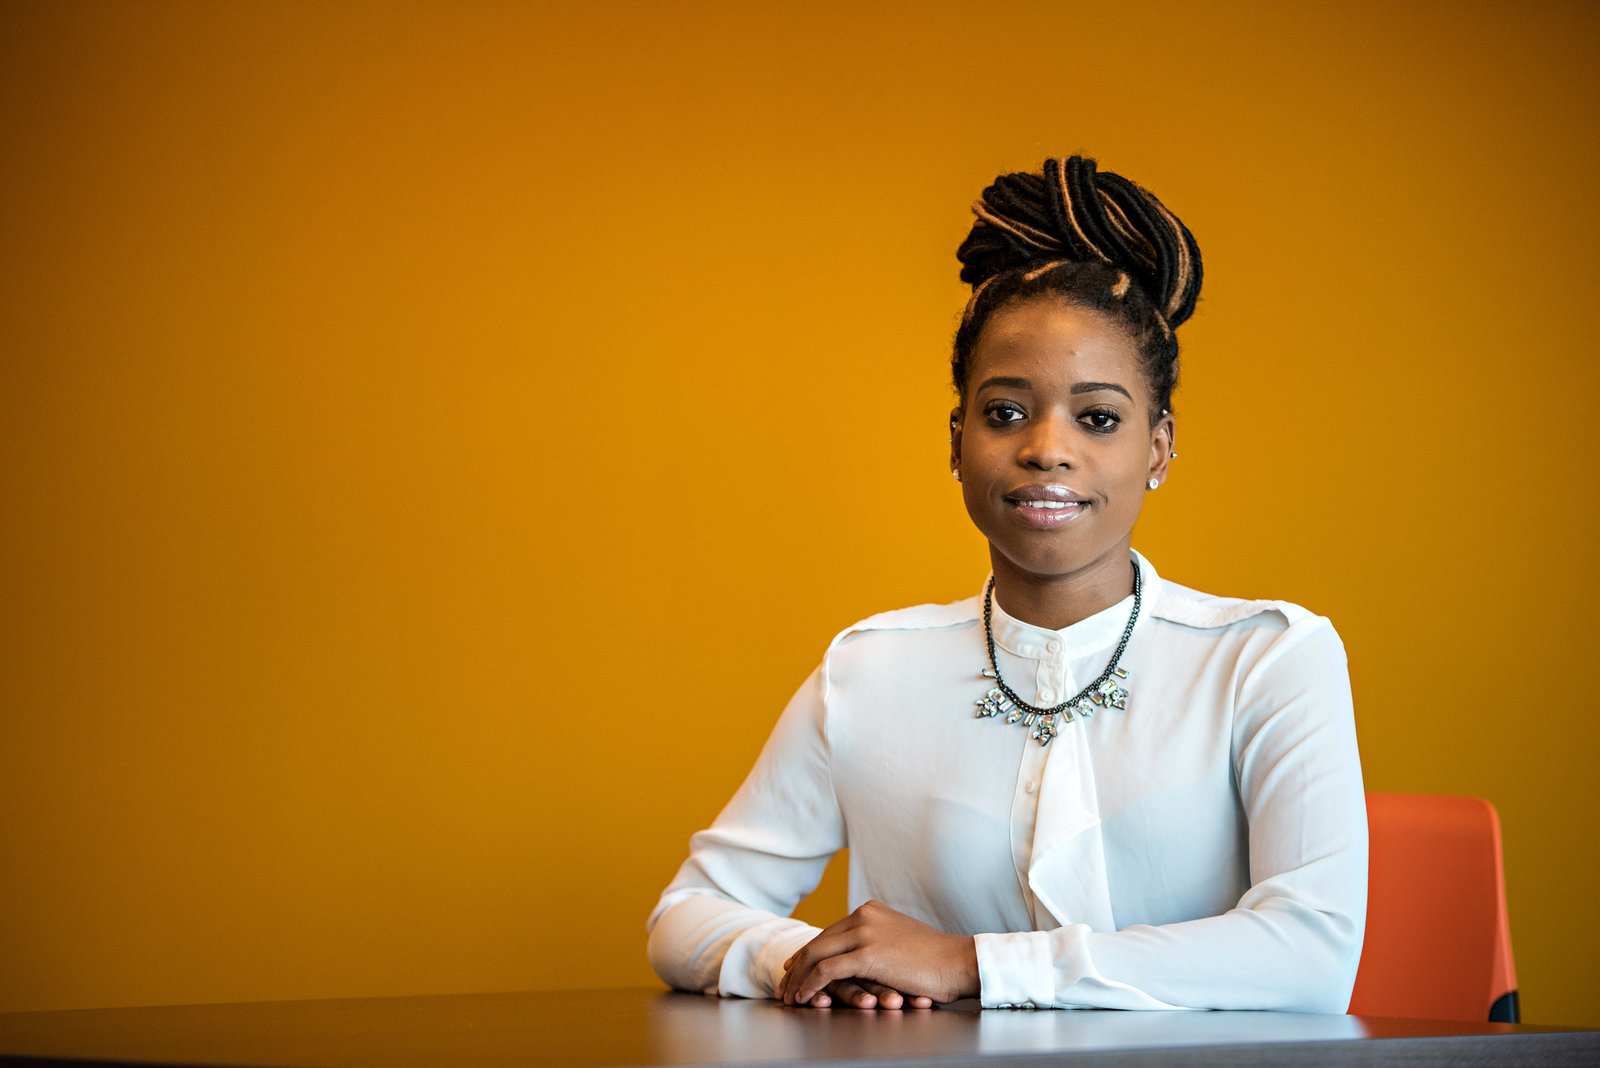 A young professional woman sits at a desk in front of an orange wall.